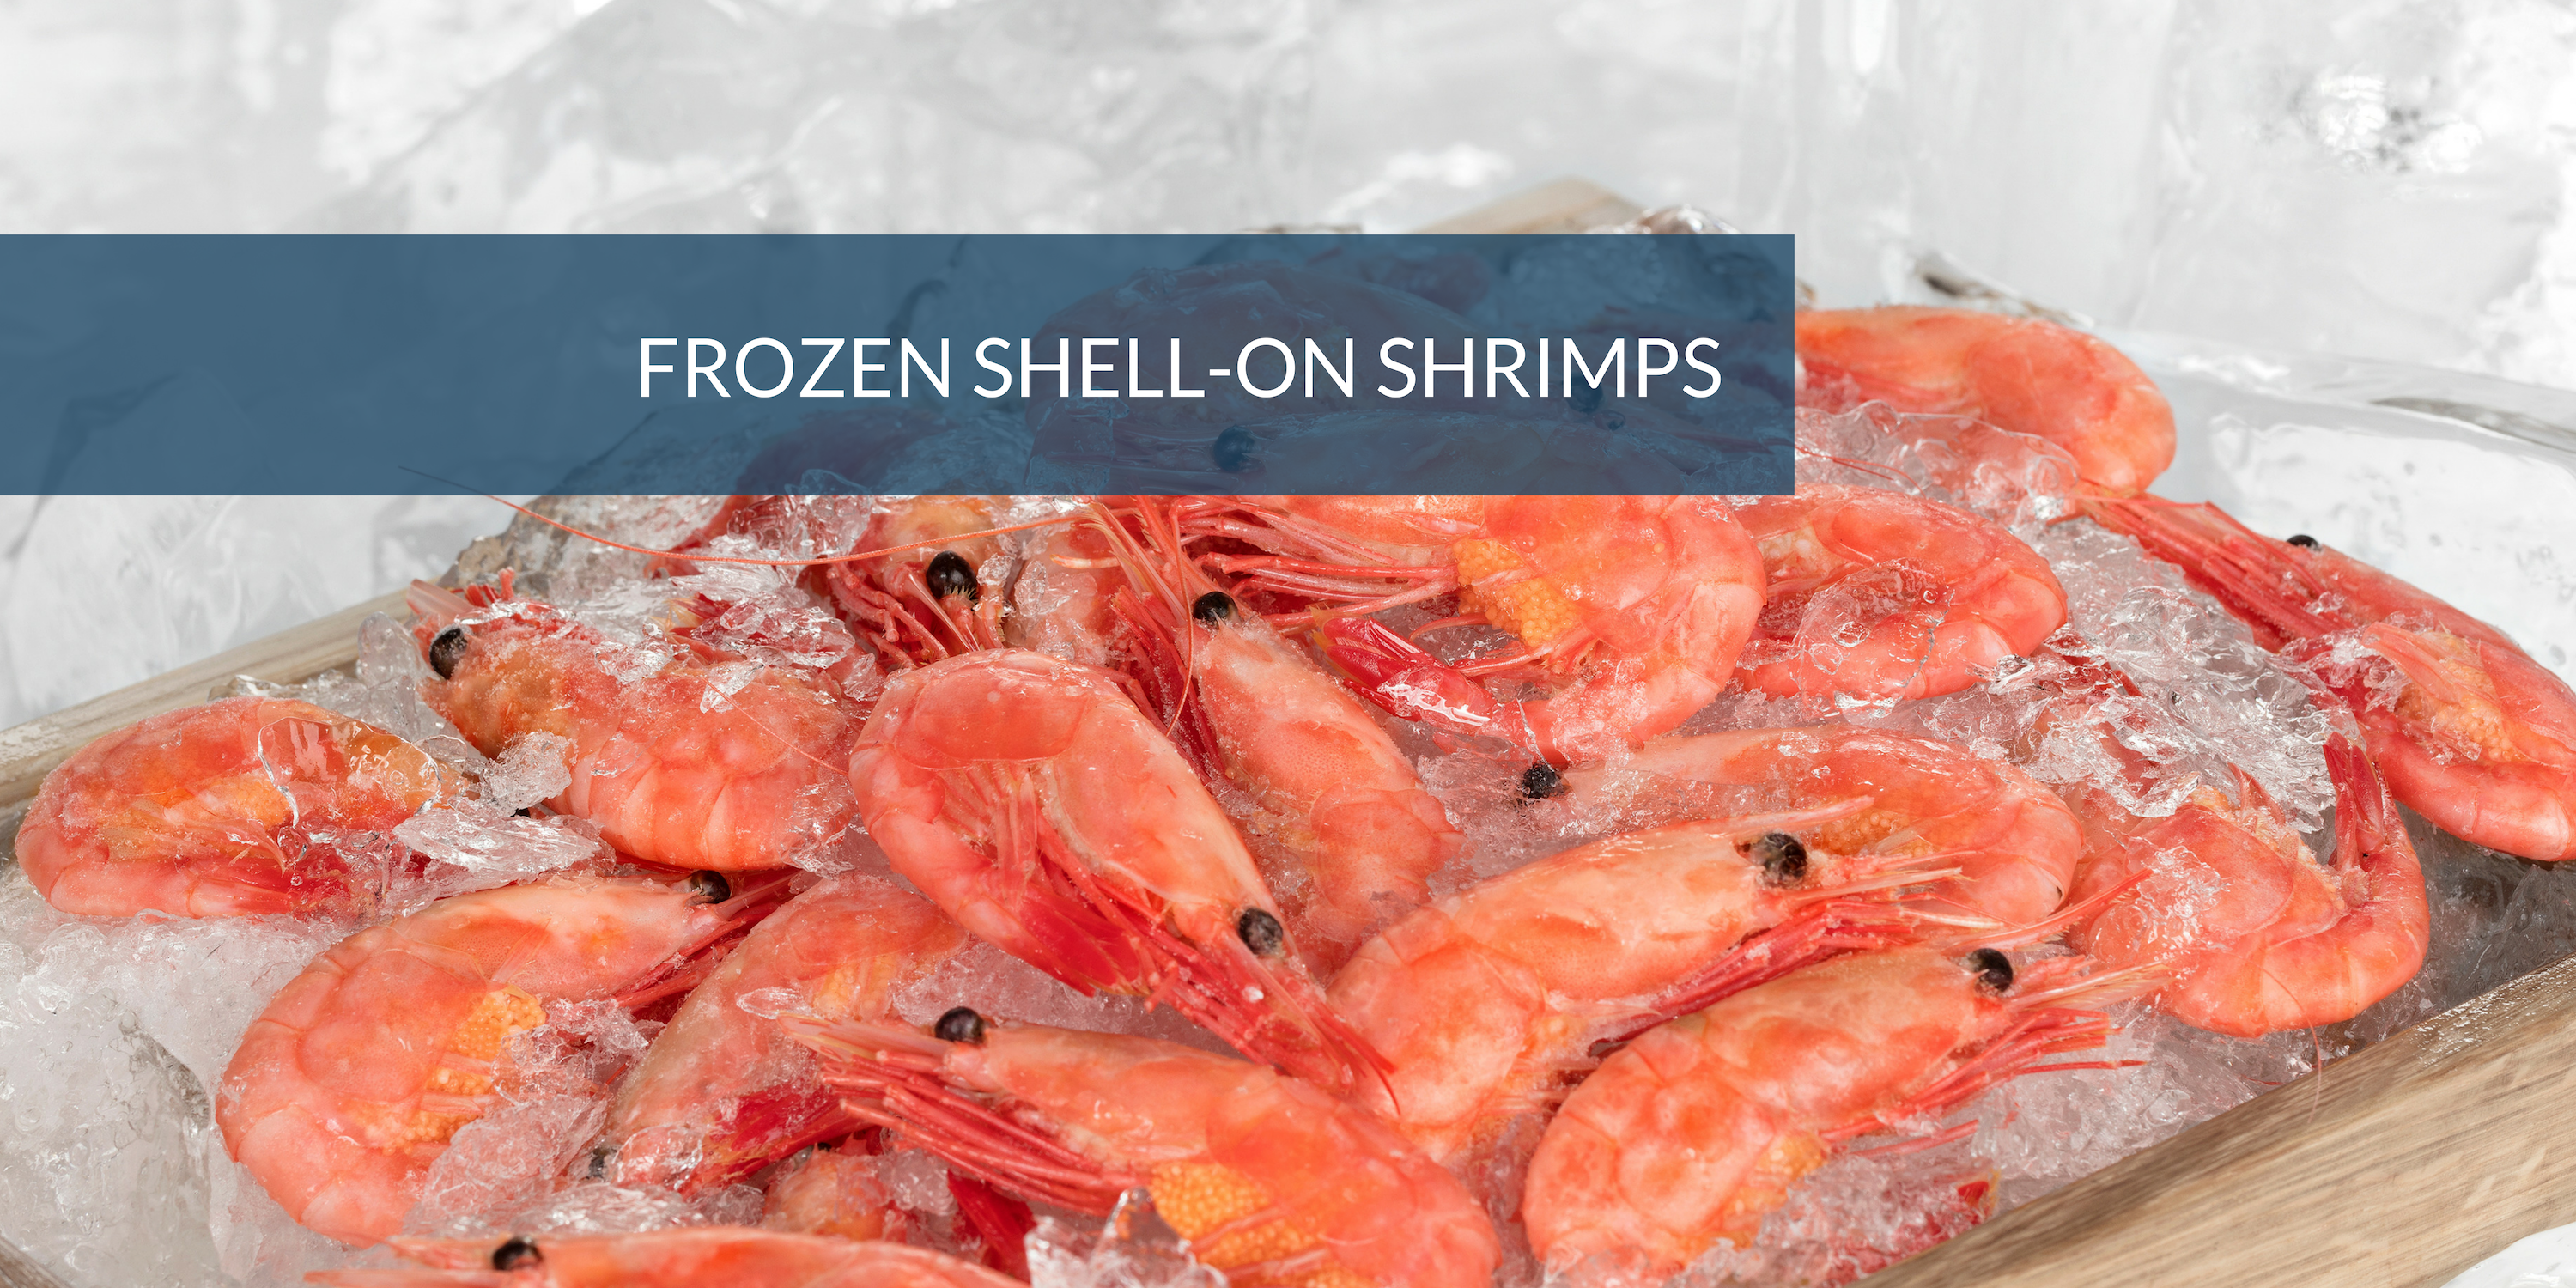 FROZEN SHELL-ON SHRIMPS